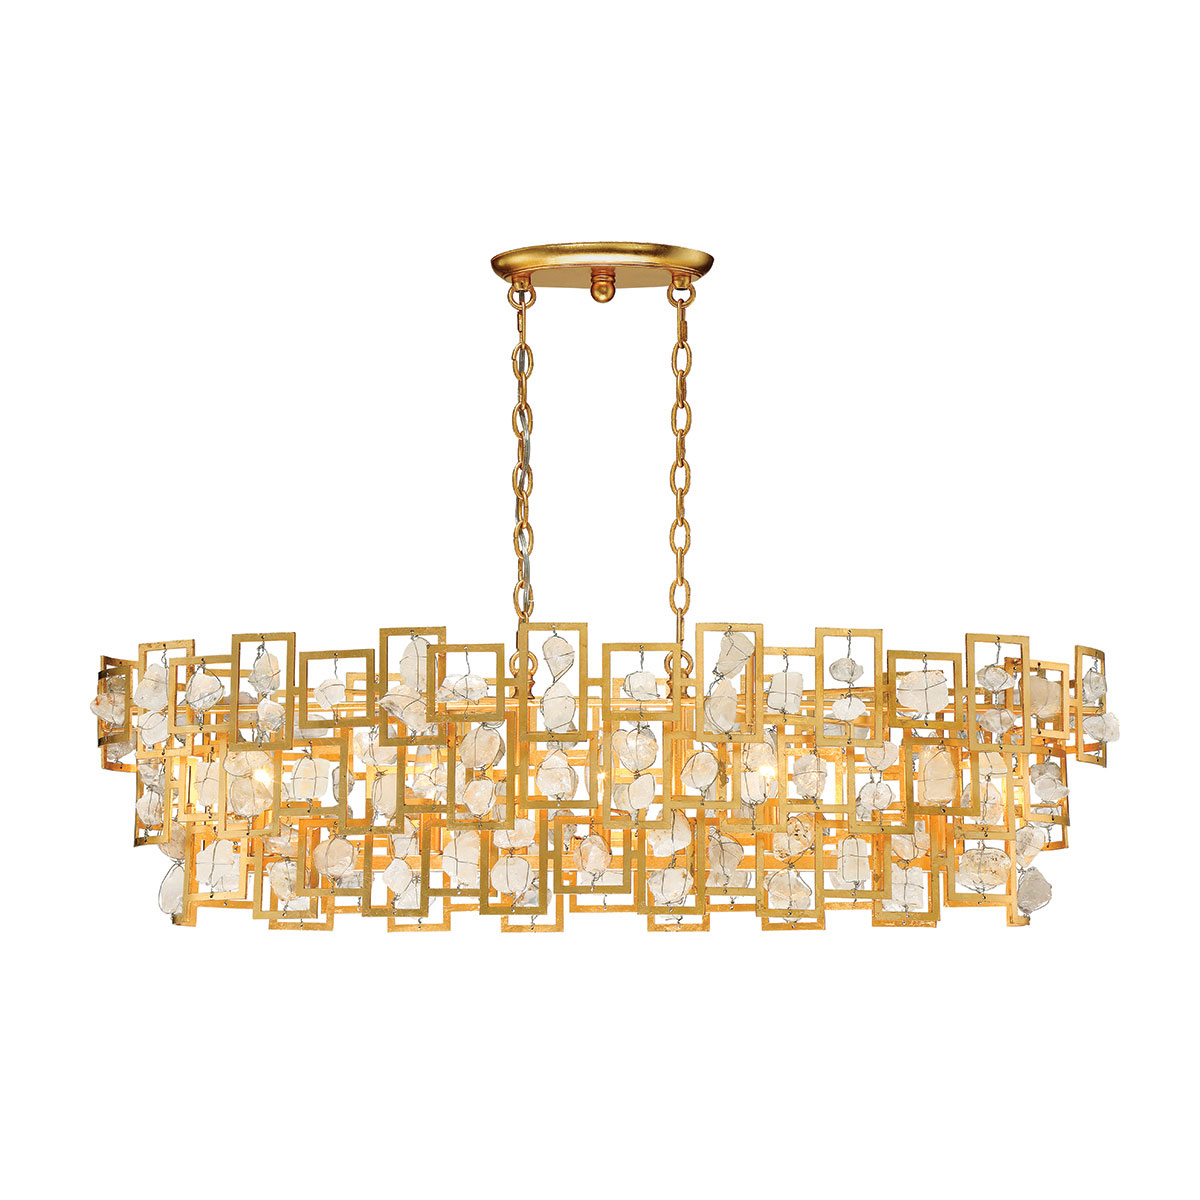 5 light linear chandelier by eurofase 30070 011 elrose 5 light linear chandelier by eurofase 30070 011 arubaitofo Image collections